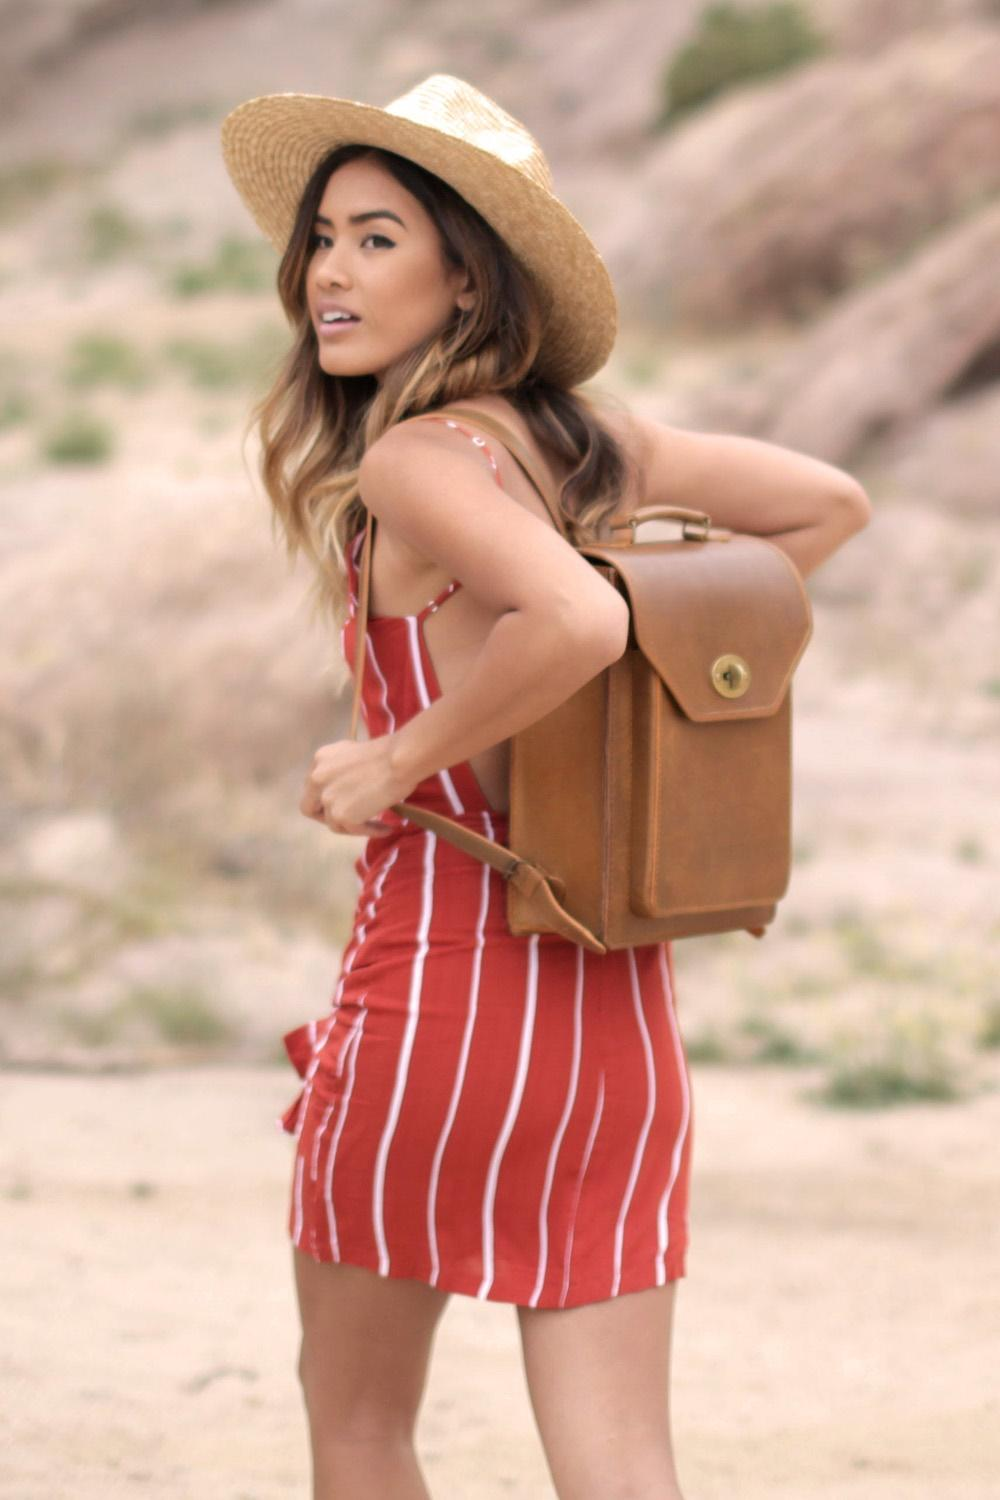 15% offBeara Beara leather backpacks, Satchels and Handbags @ Beara Beara